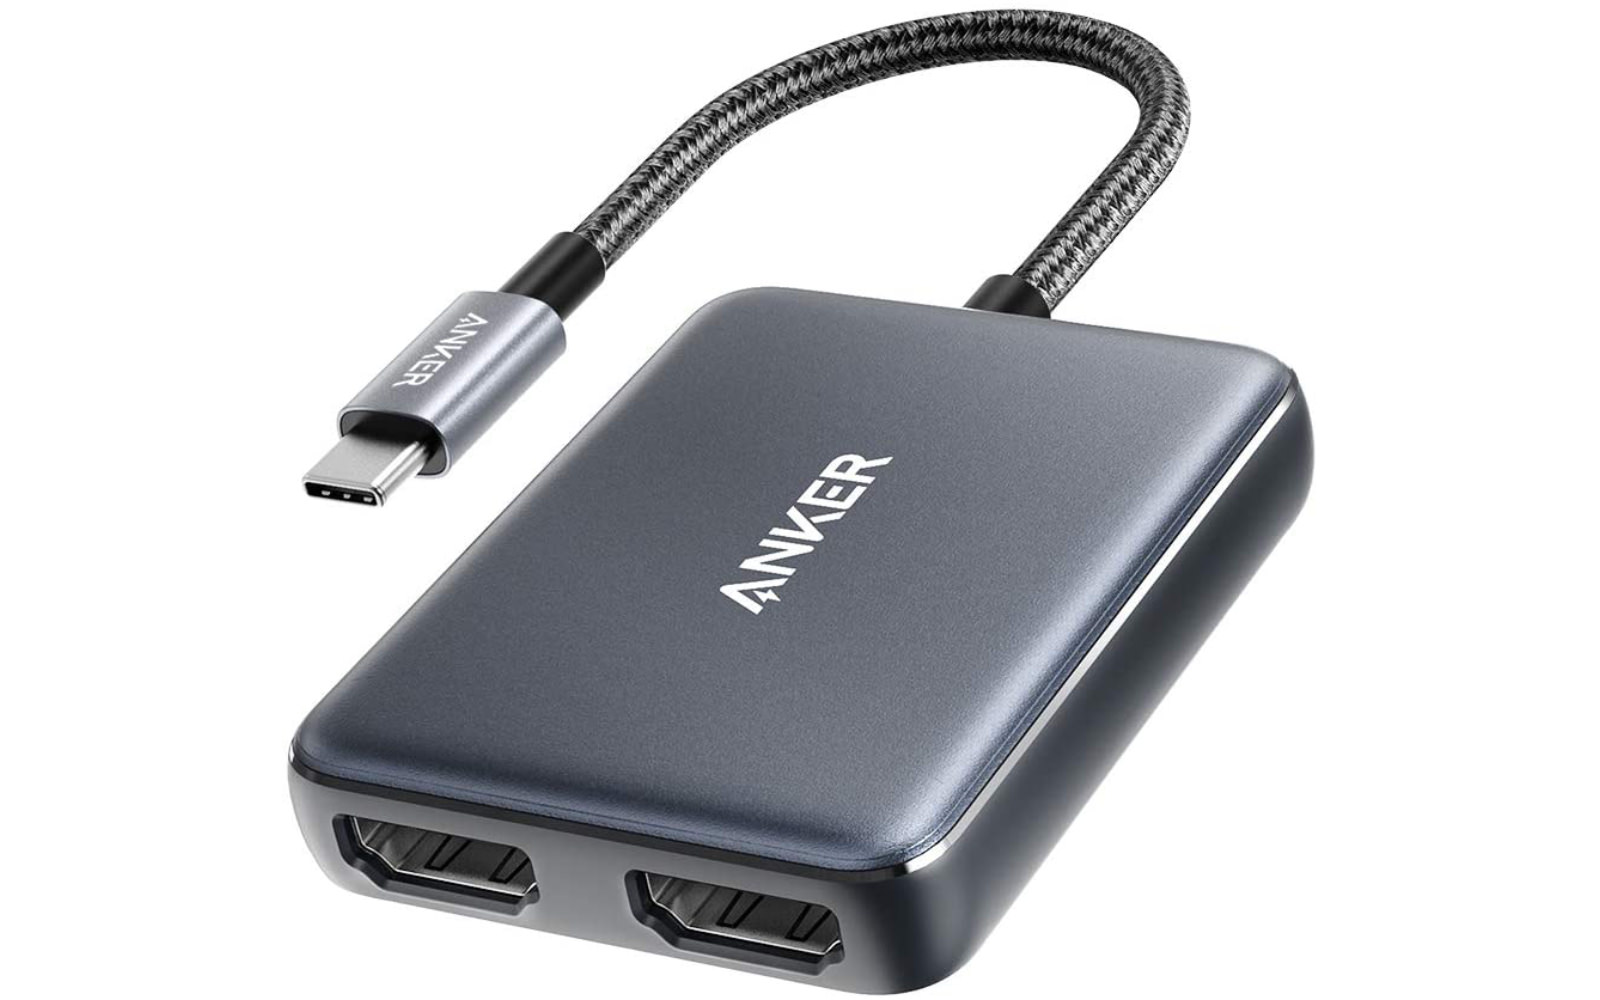 Anker-PowerExpand-USBC-Dual-HDMI-Adaptor.jpg